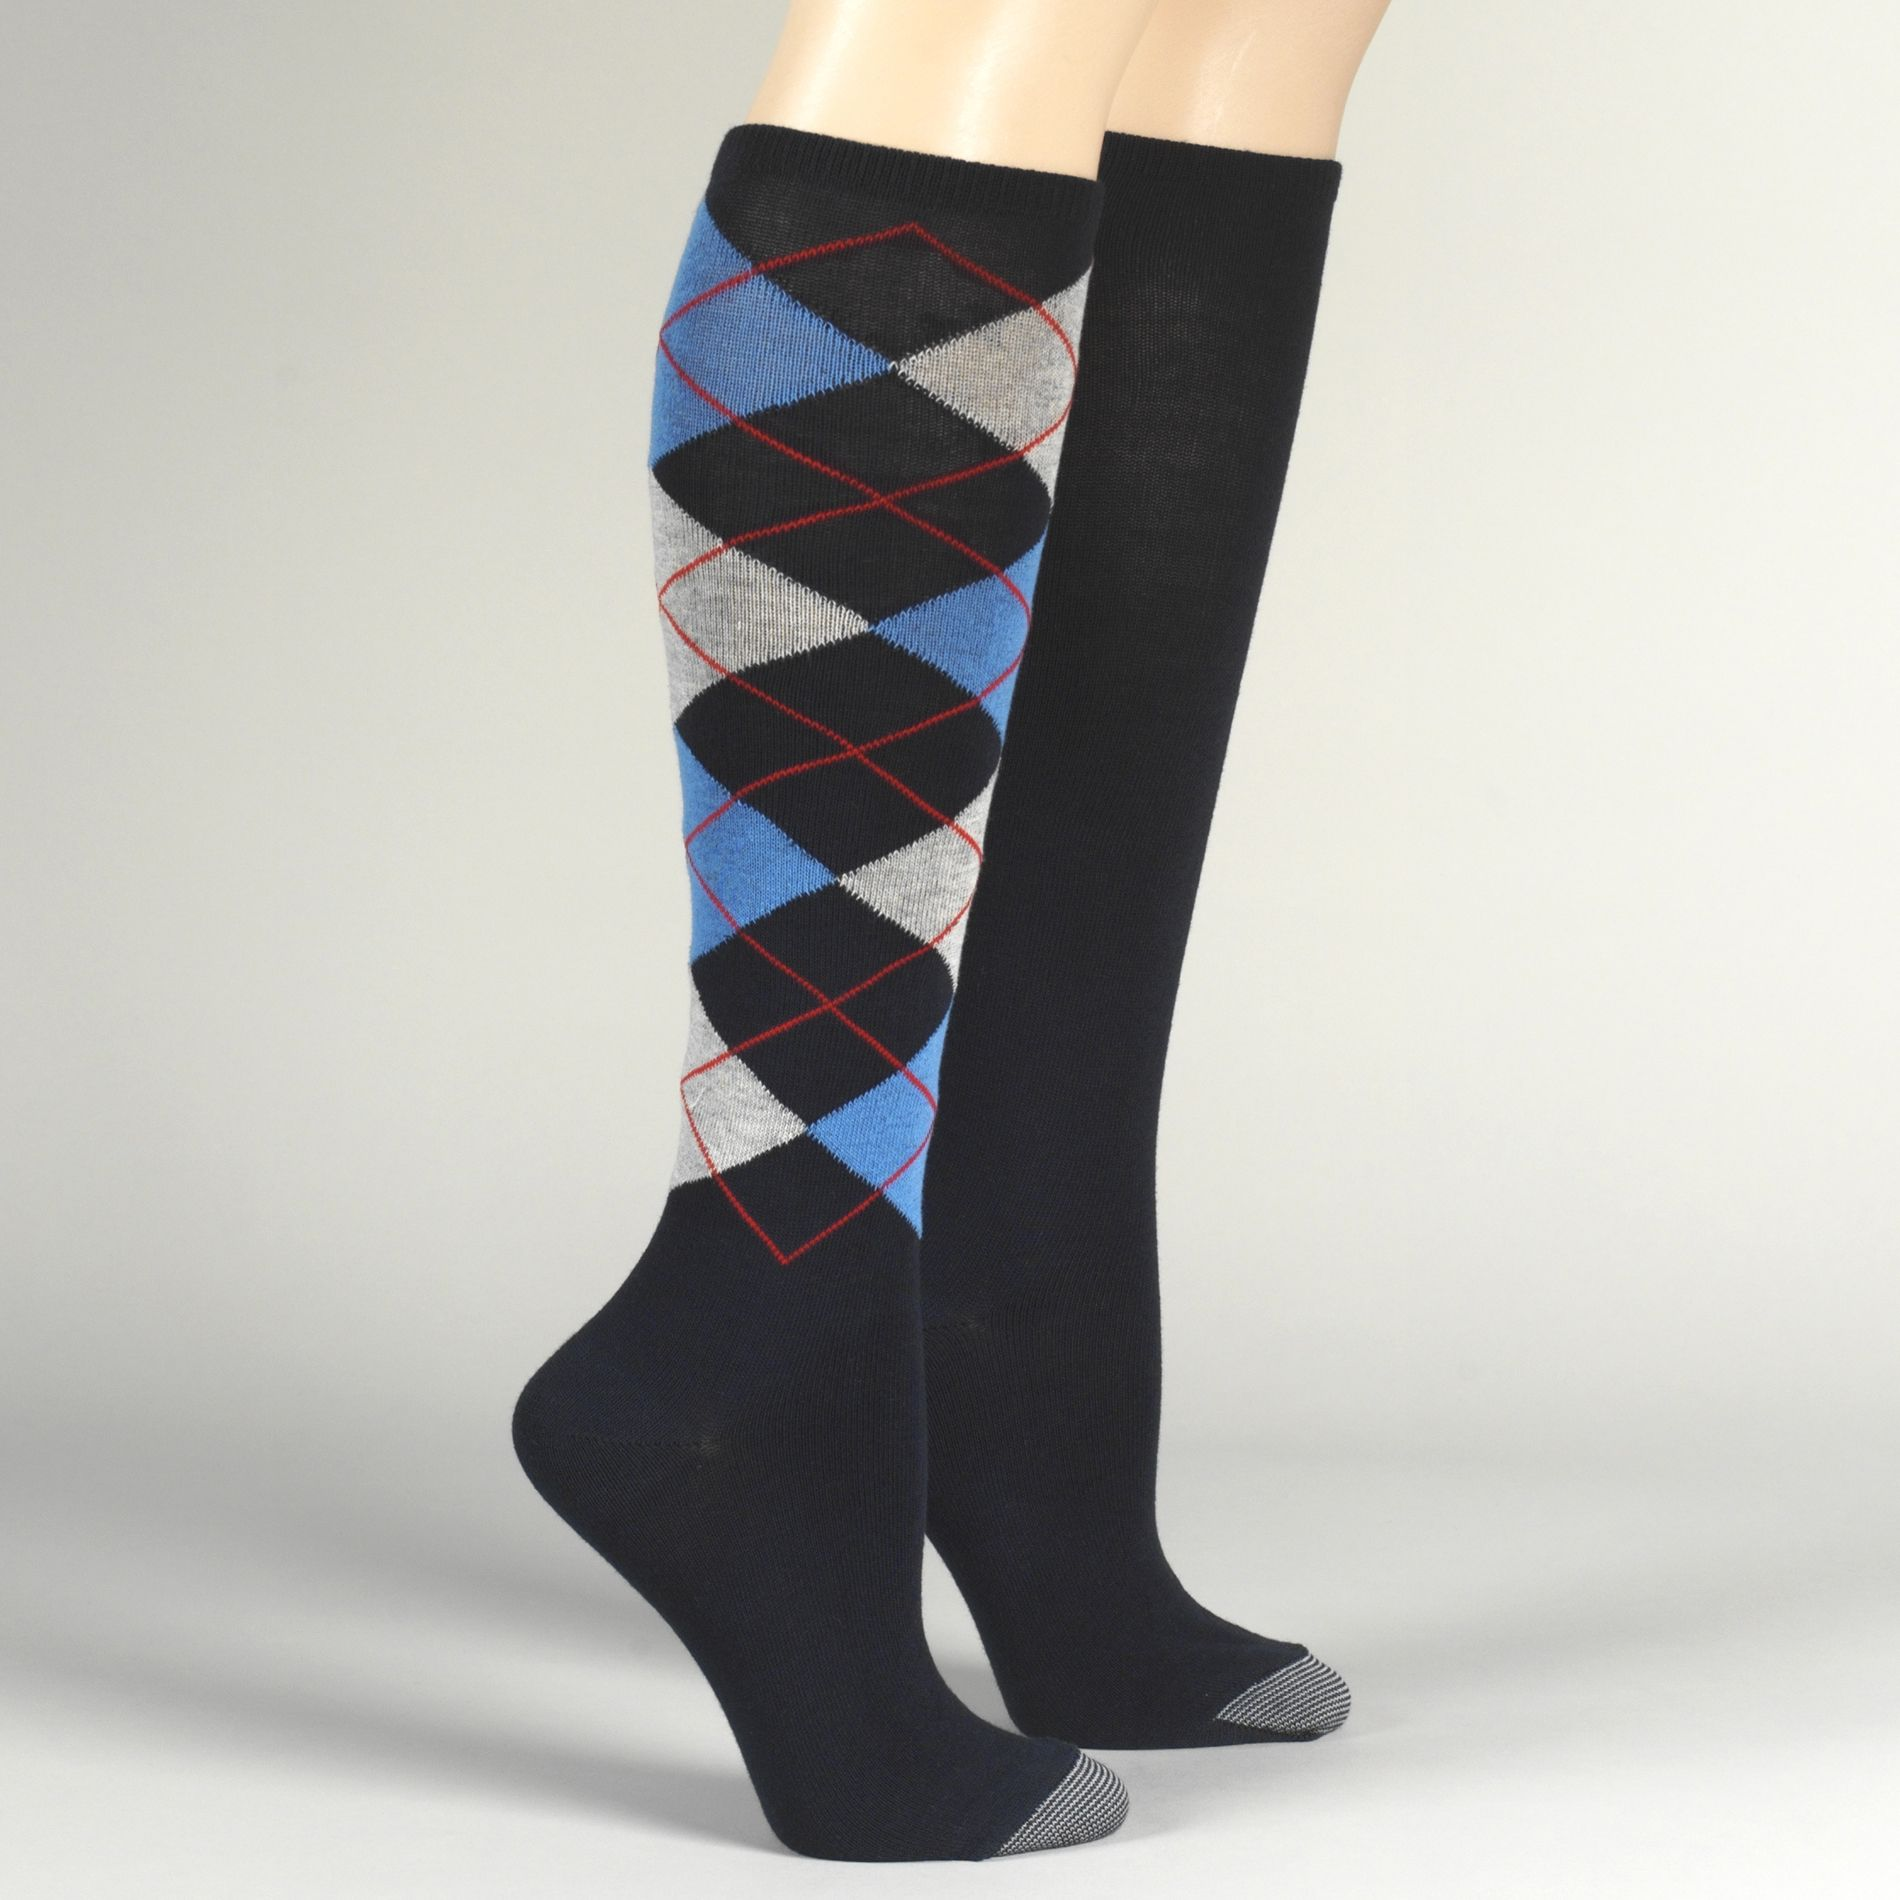 Silvertoe Women's Knee High Socks Two-Pack PartNumber: 075J2465000P MfgPartNumber: 075J2465000